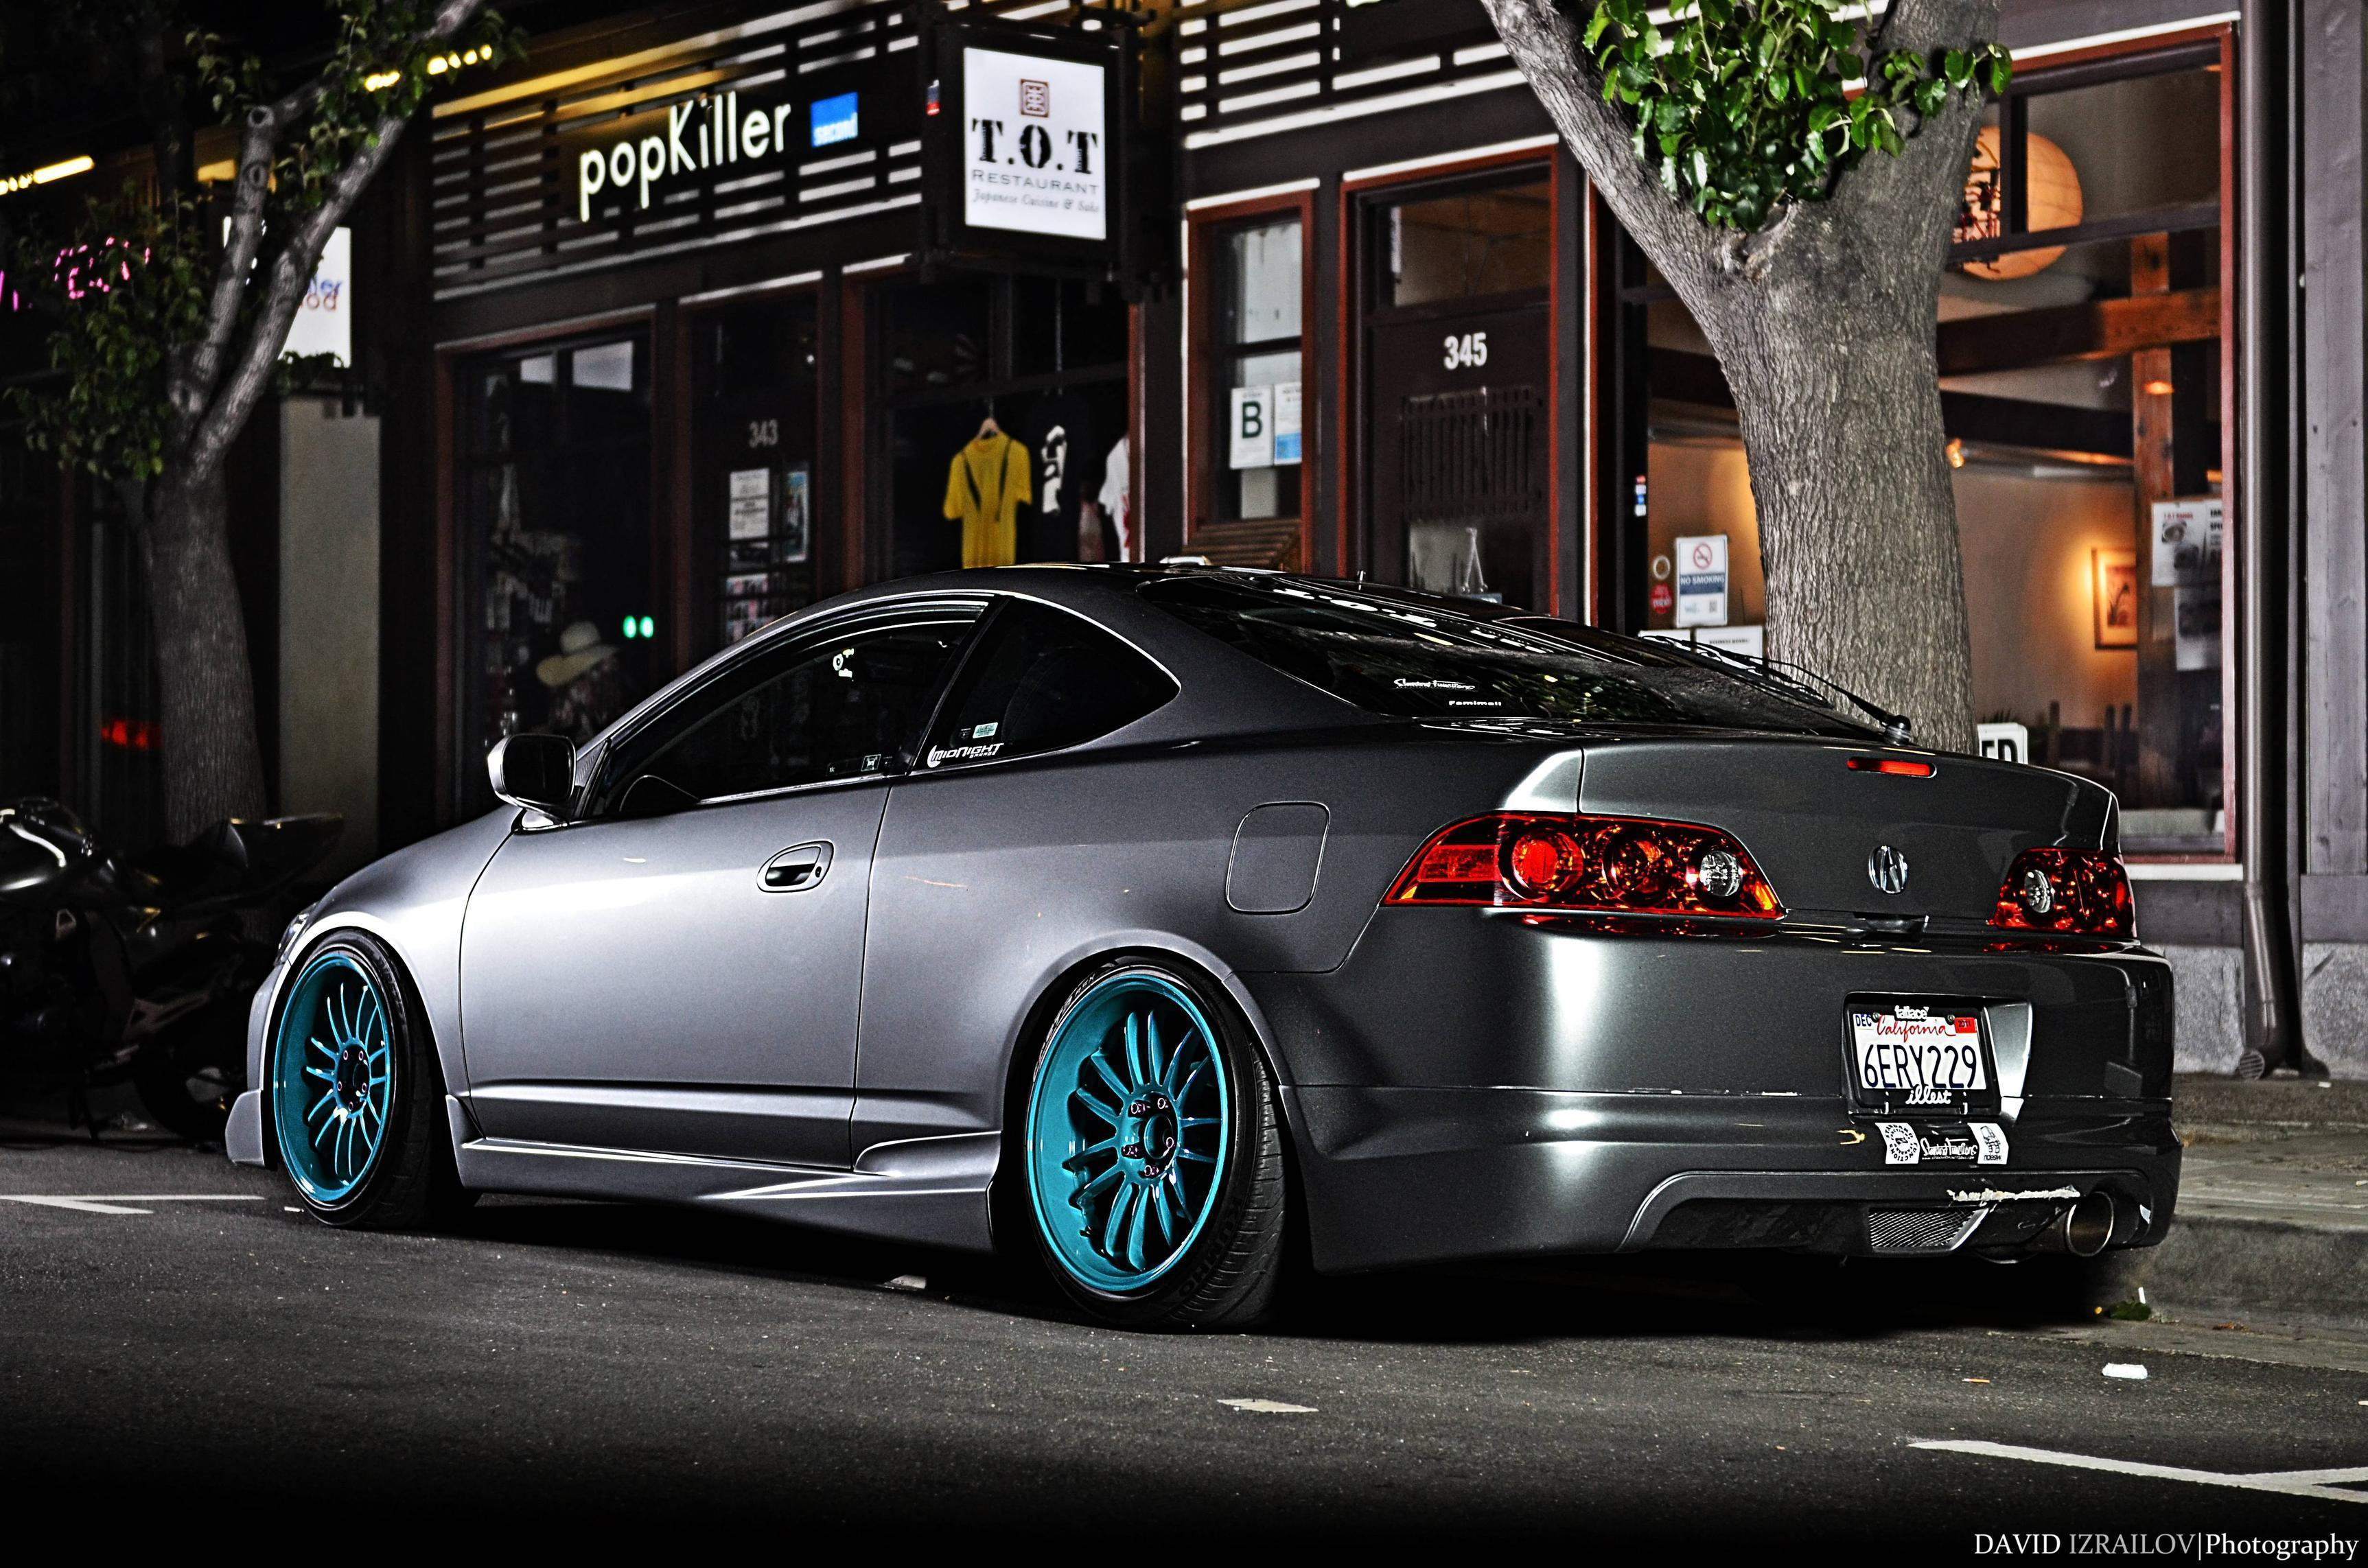 Hd Jdm Car Wallpapers Acura Rsx Wallpapers Wallpaper Cave